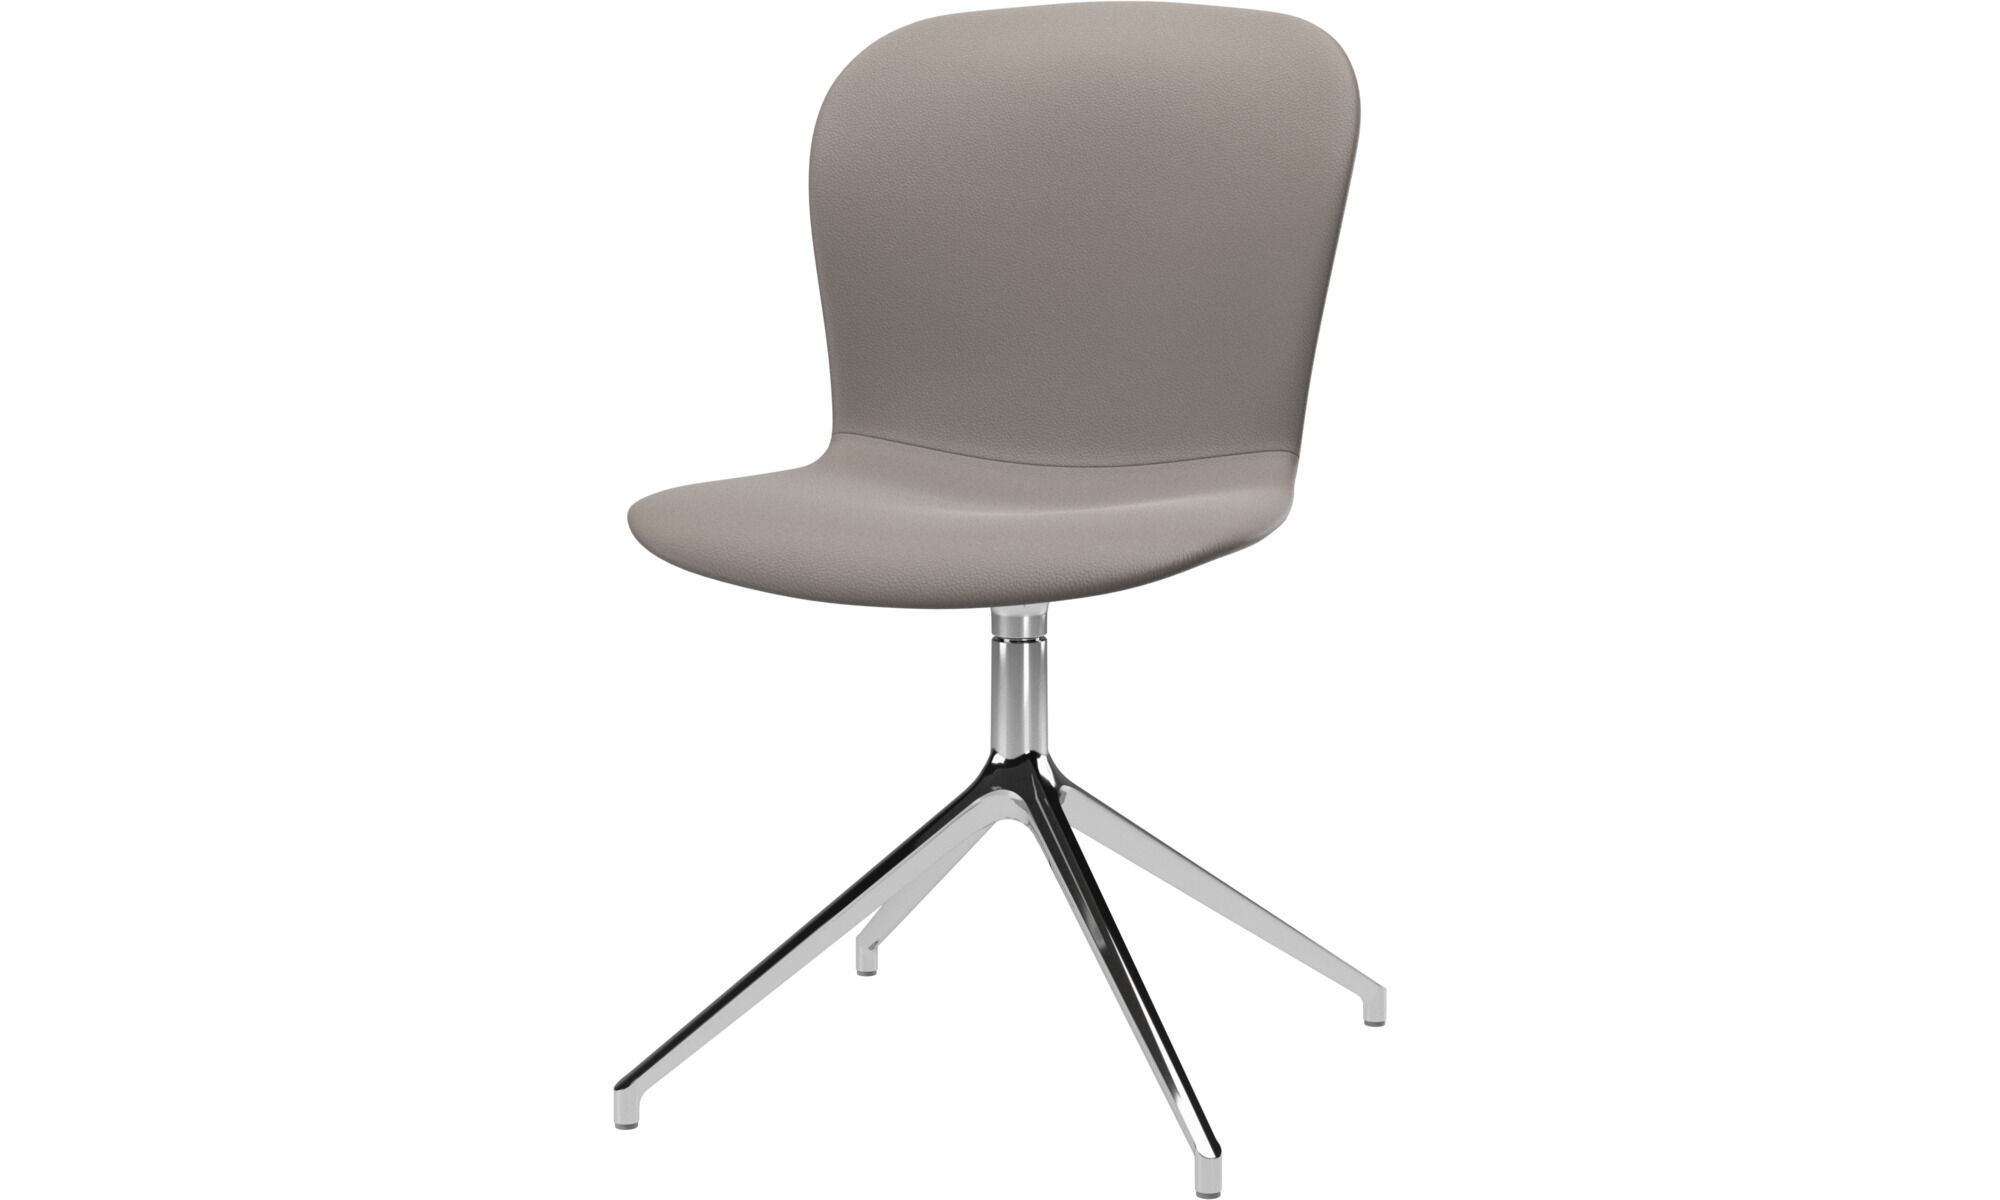 Adelaide chair with swivel function (set of x8)